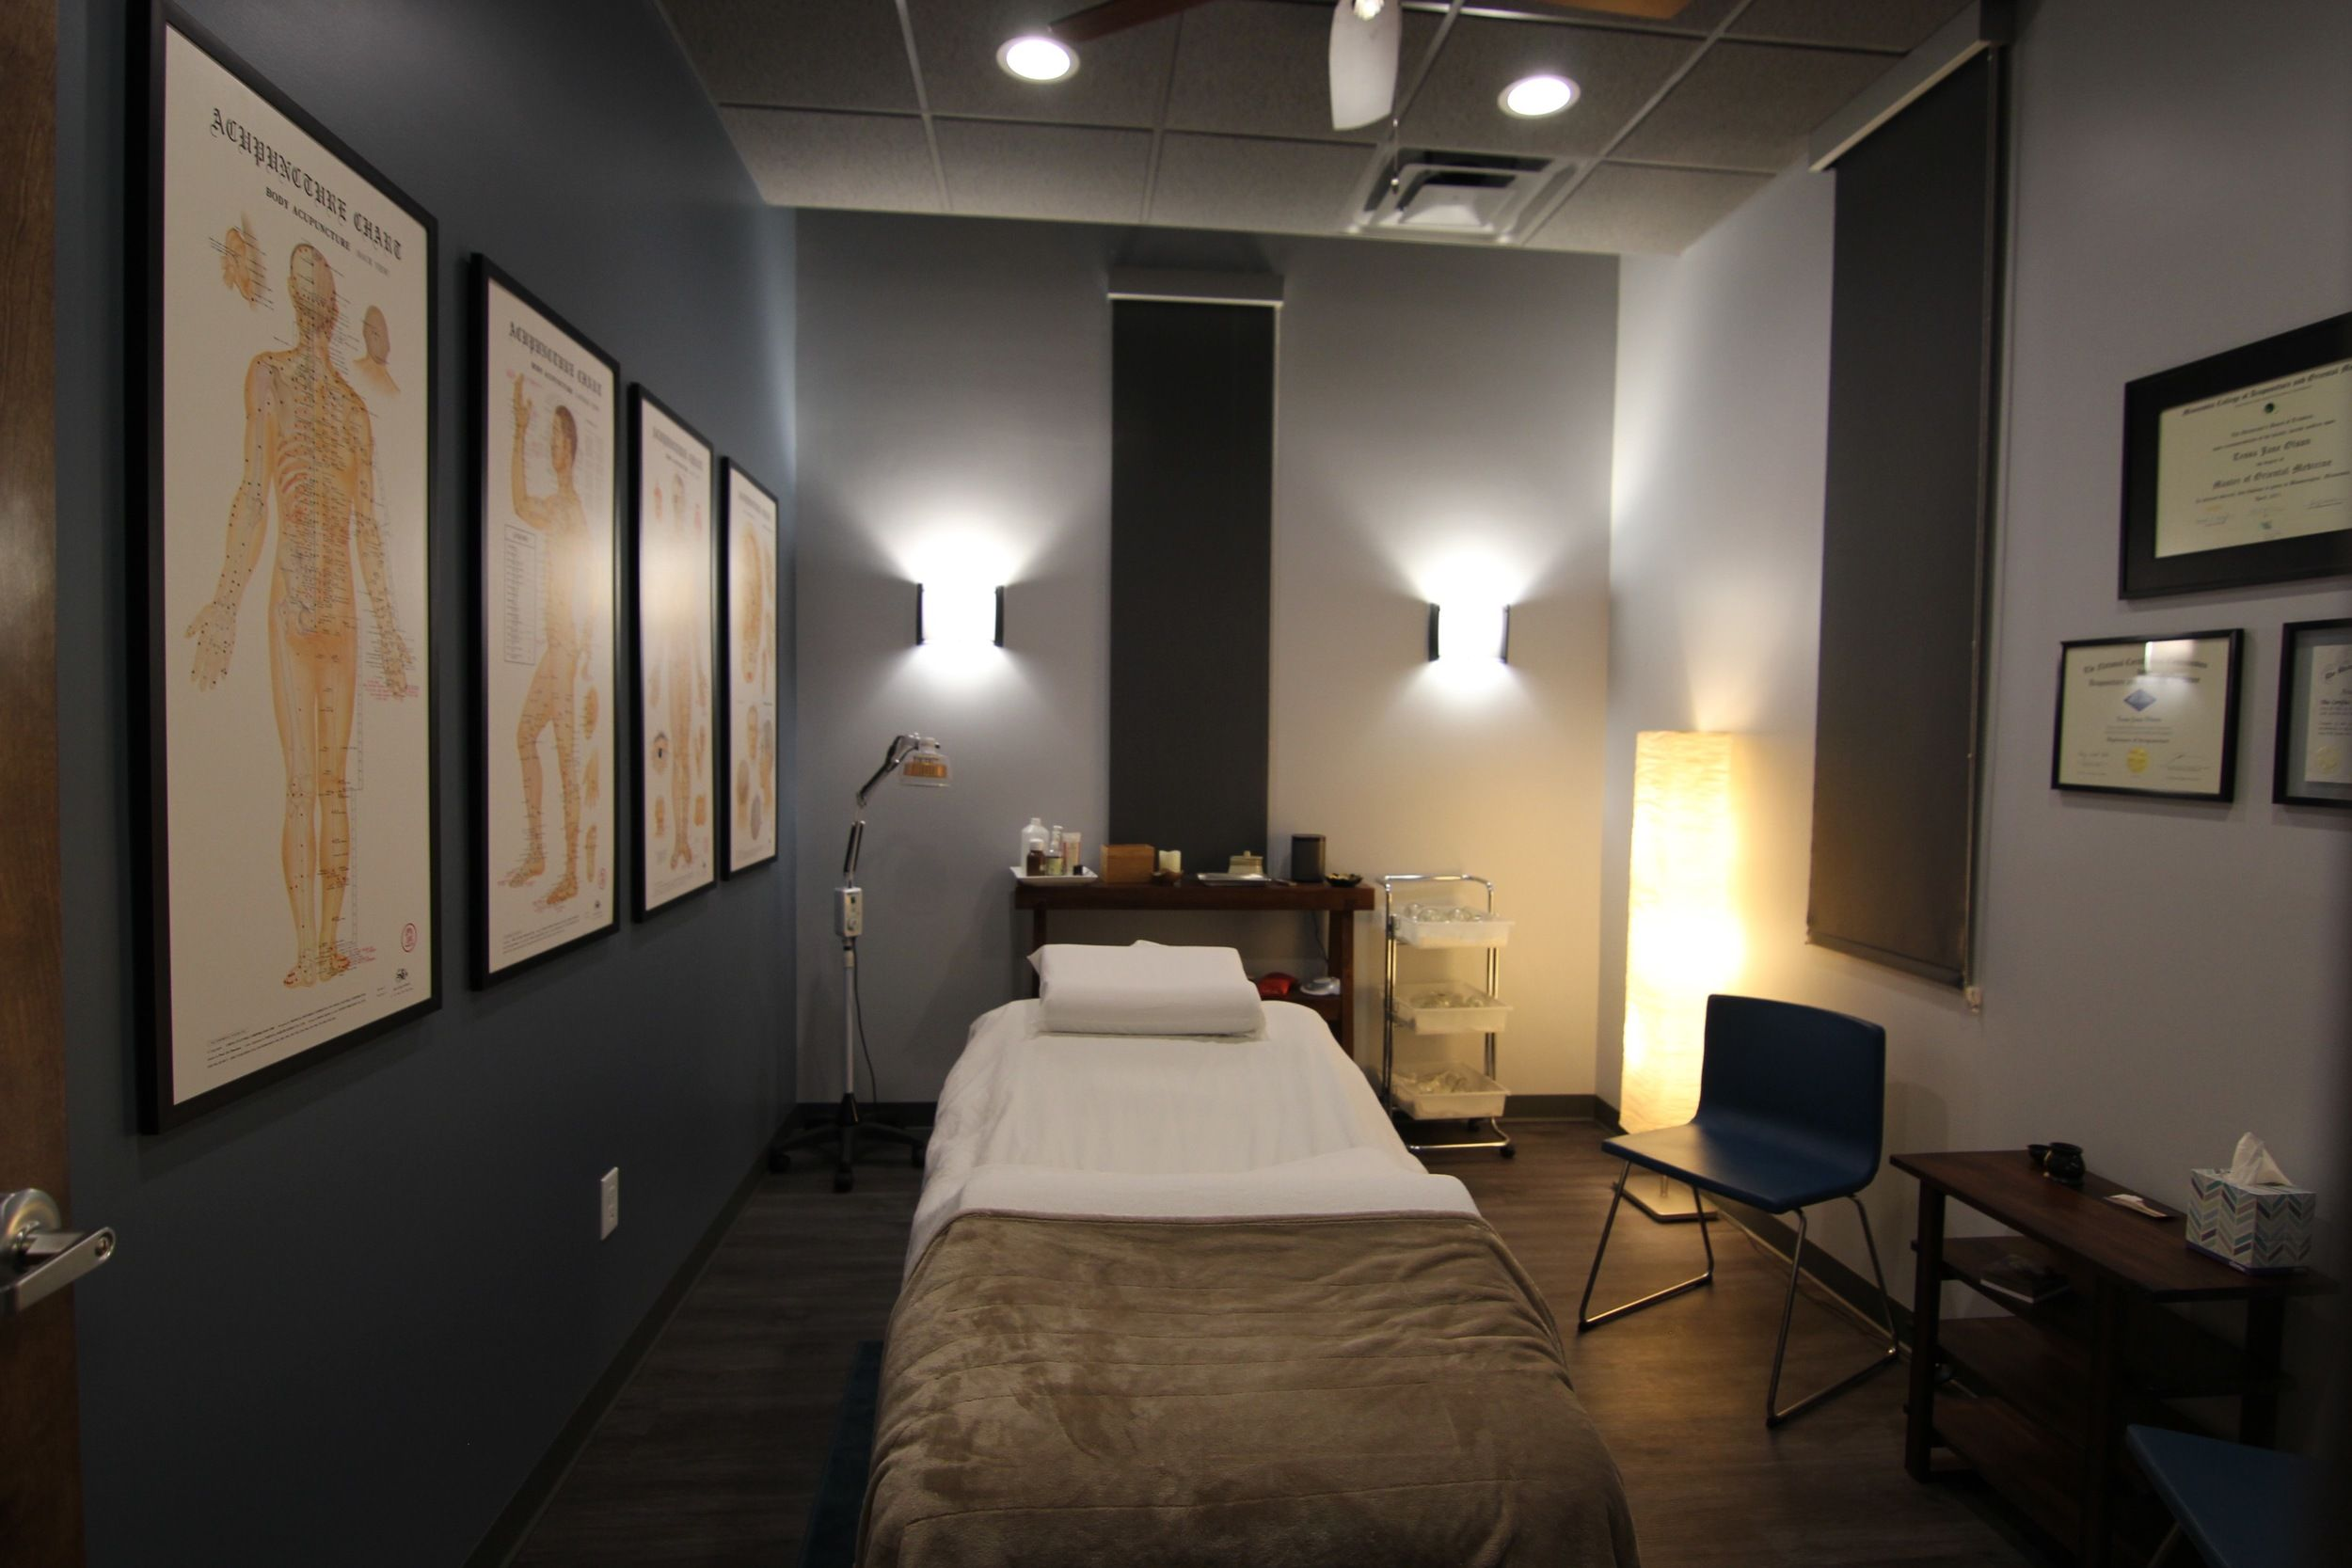 Acupuncture Room With Images Acupuncture Medical Acupuncture